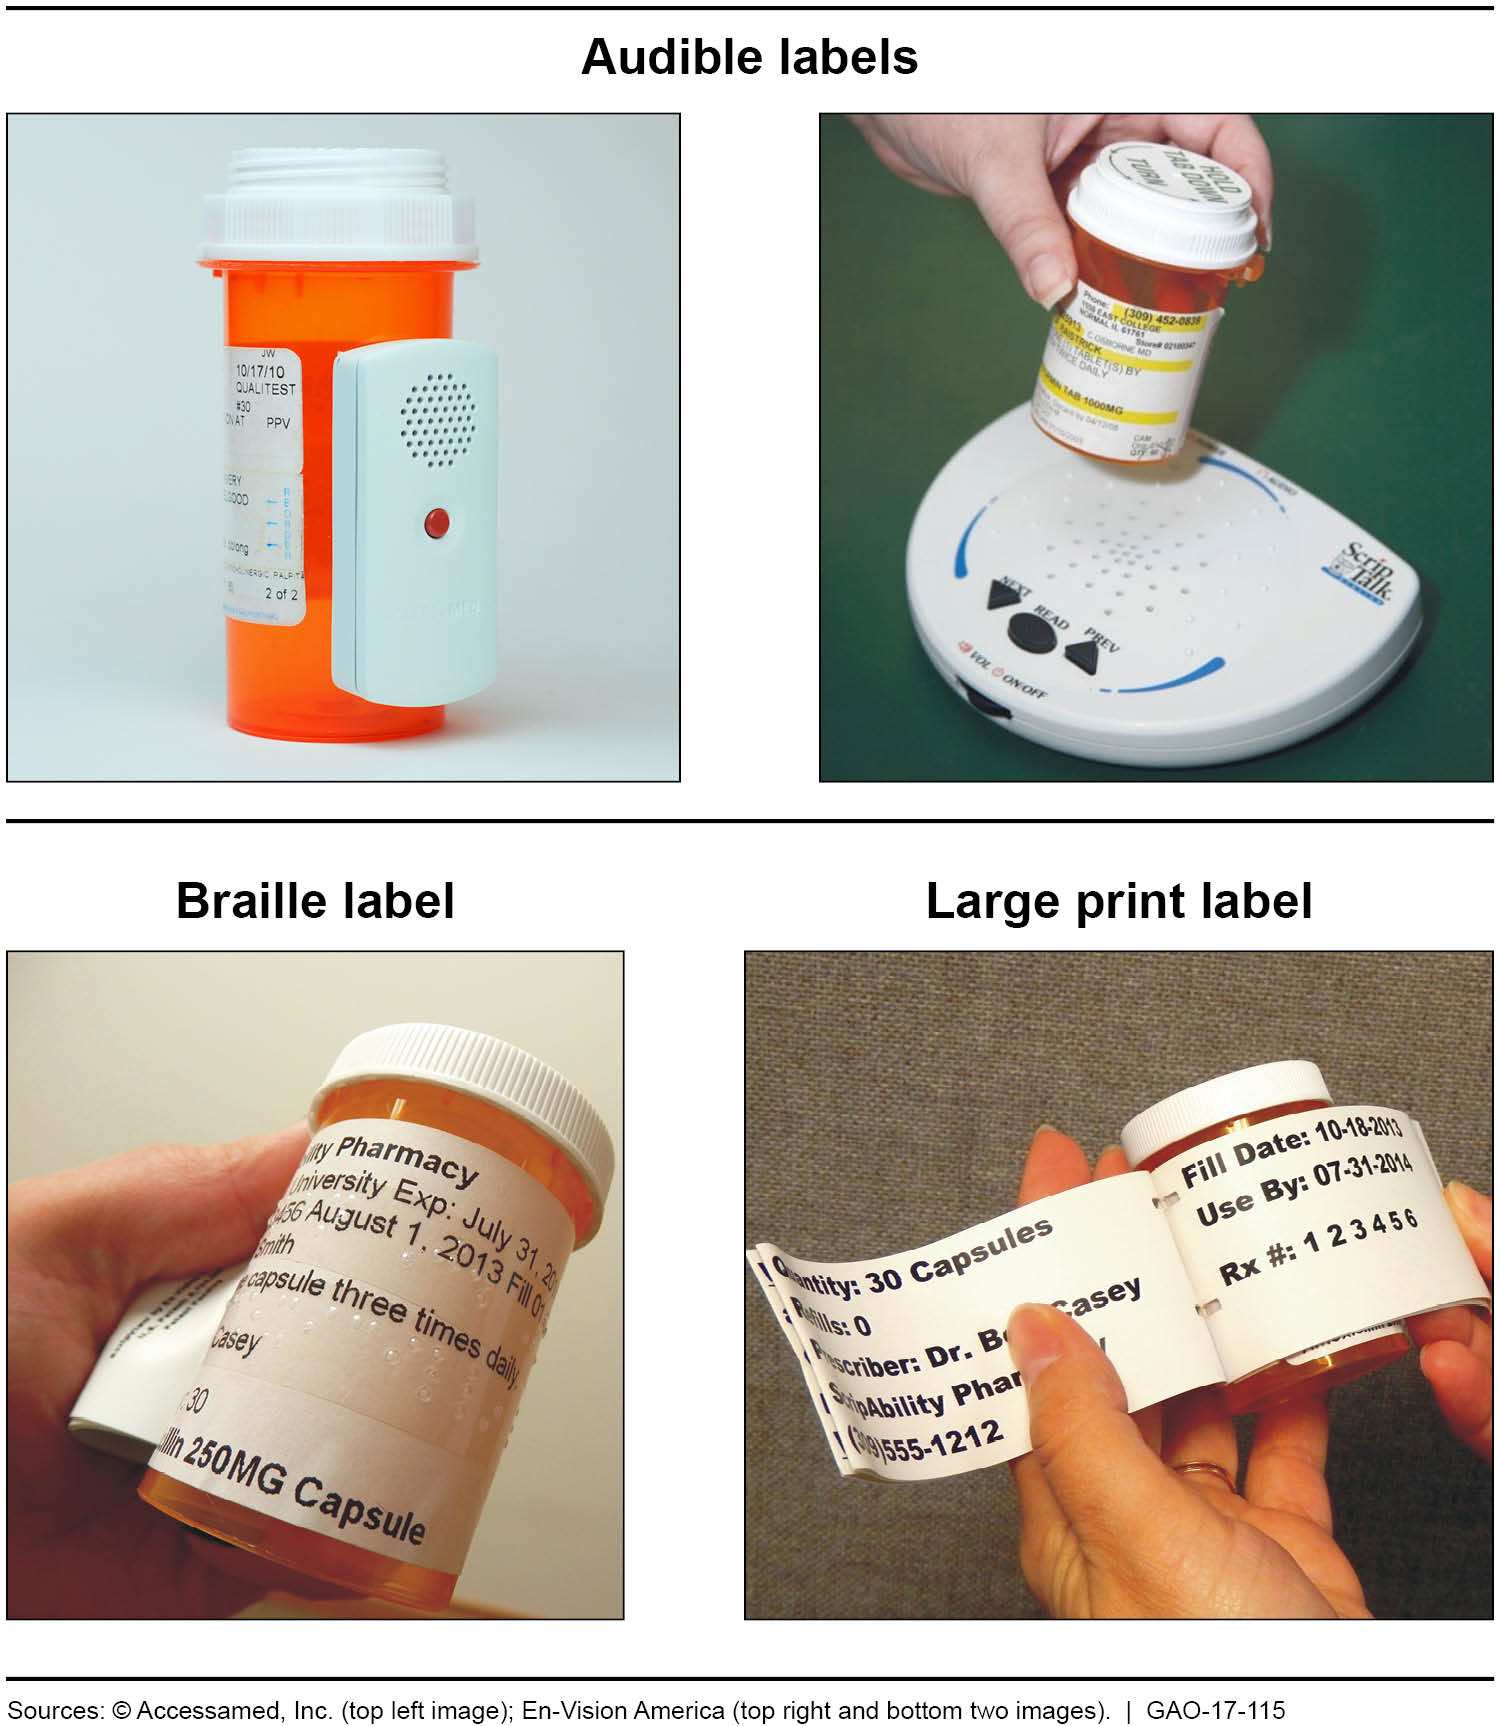 differing kinds of labels for visually impaired or blind